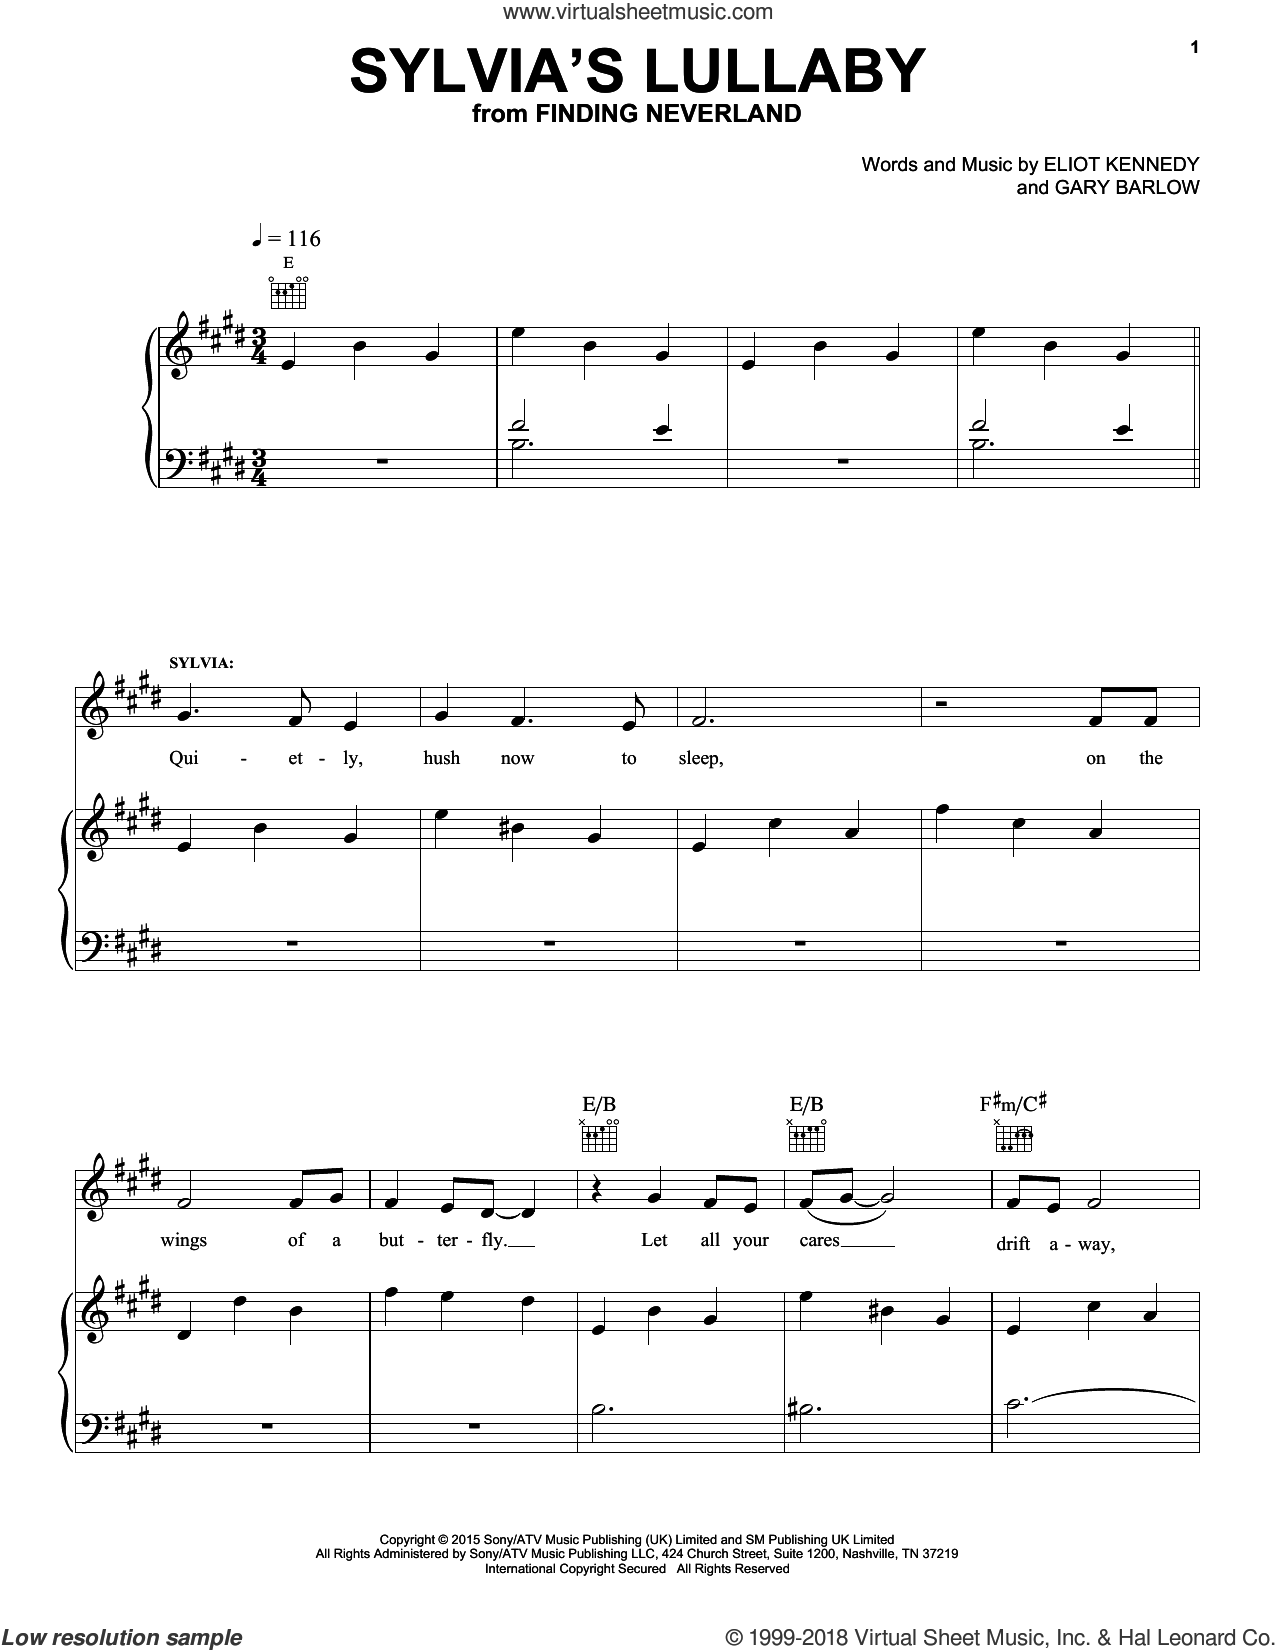 Sylvia's Lullaby sheet music for voice, piano or guitar by Gary Barlow & Eliot Kennedy, ELIOT KENNEDY and Gary Barlow, intermediate voice, piano or guitar. Score Image Preview.